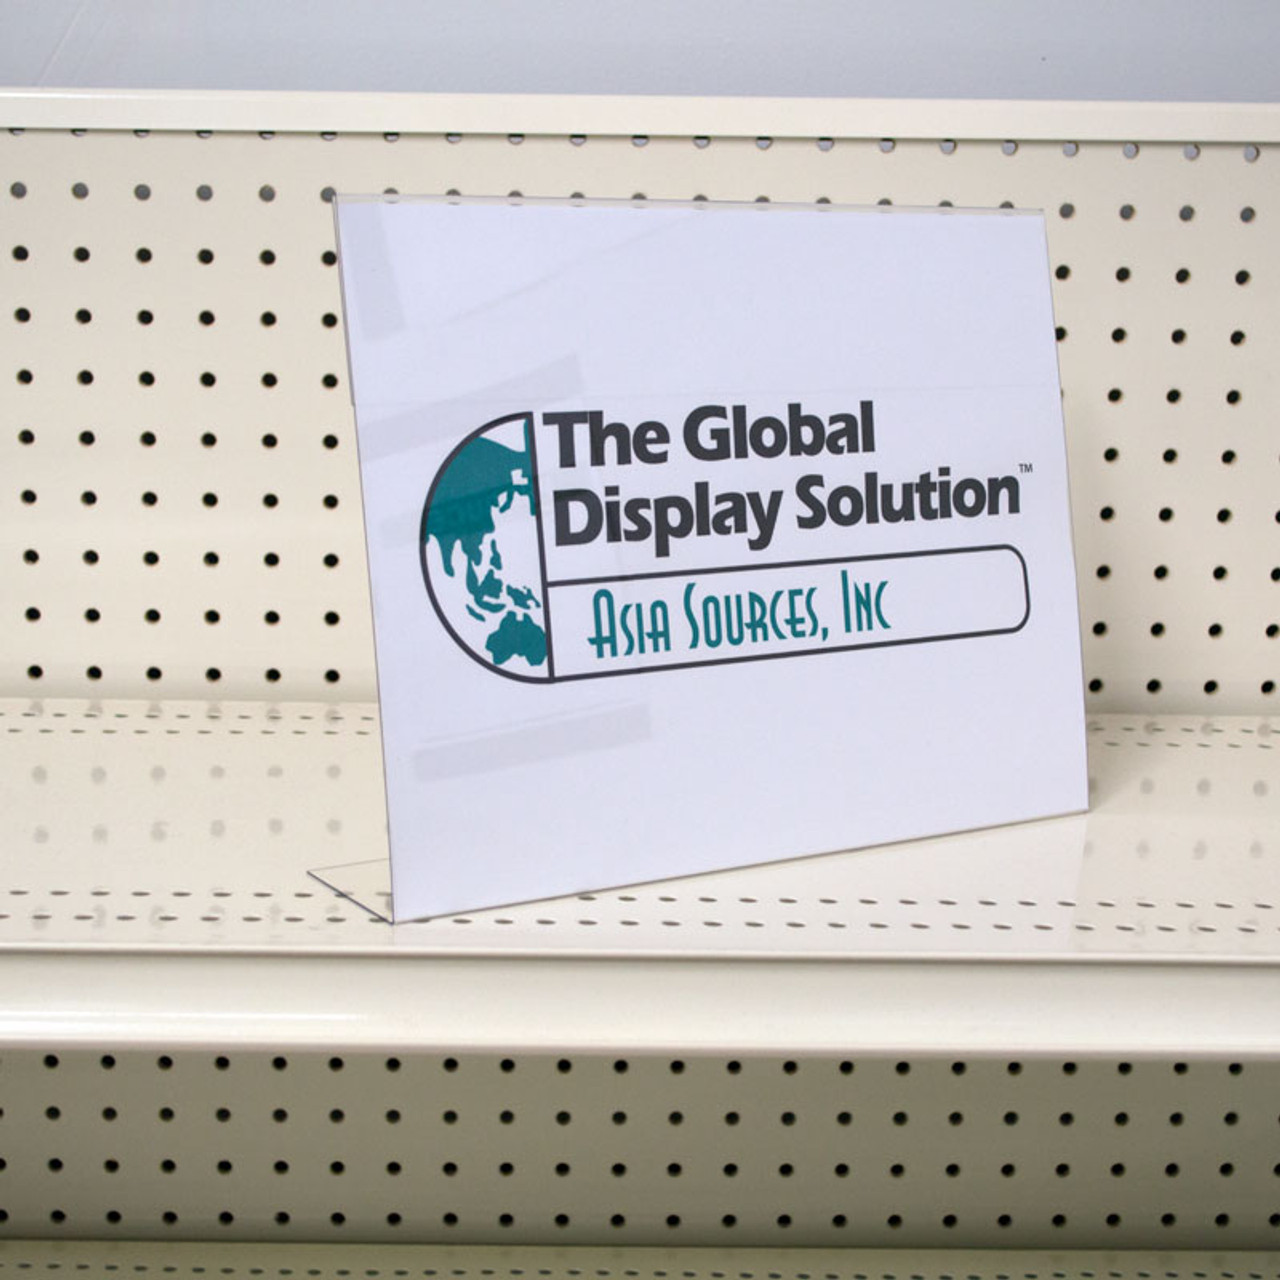 Case stack sign protector for use in retail stores and warehouses